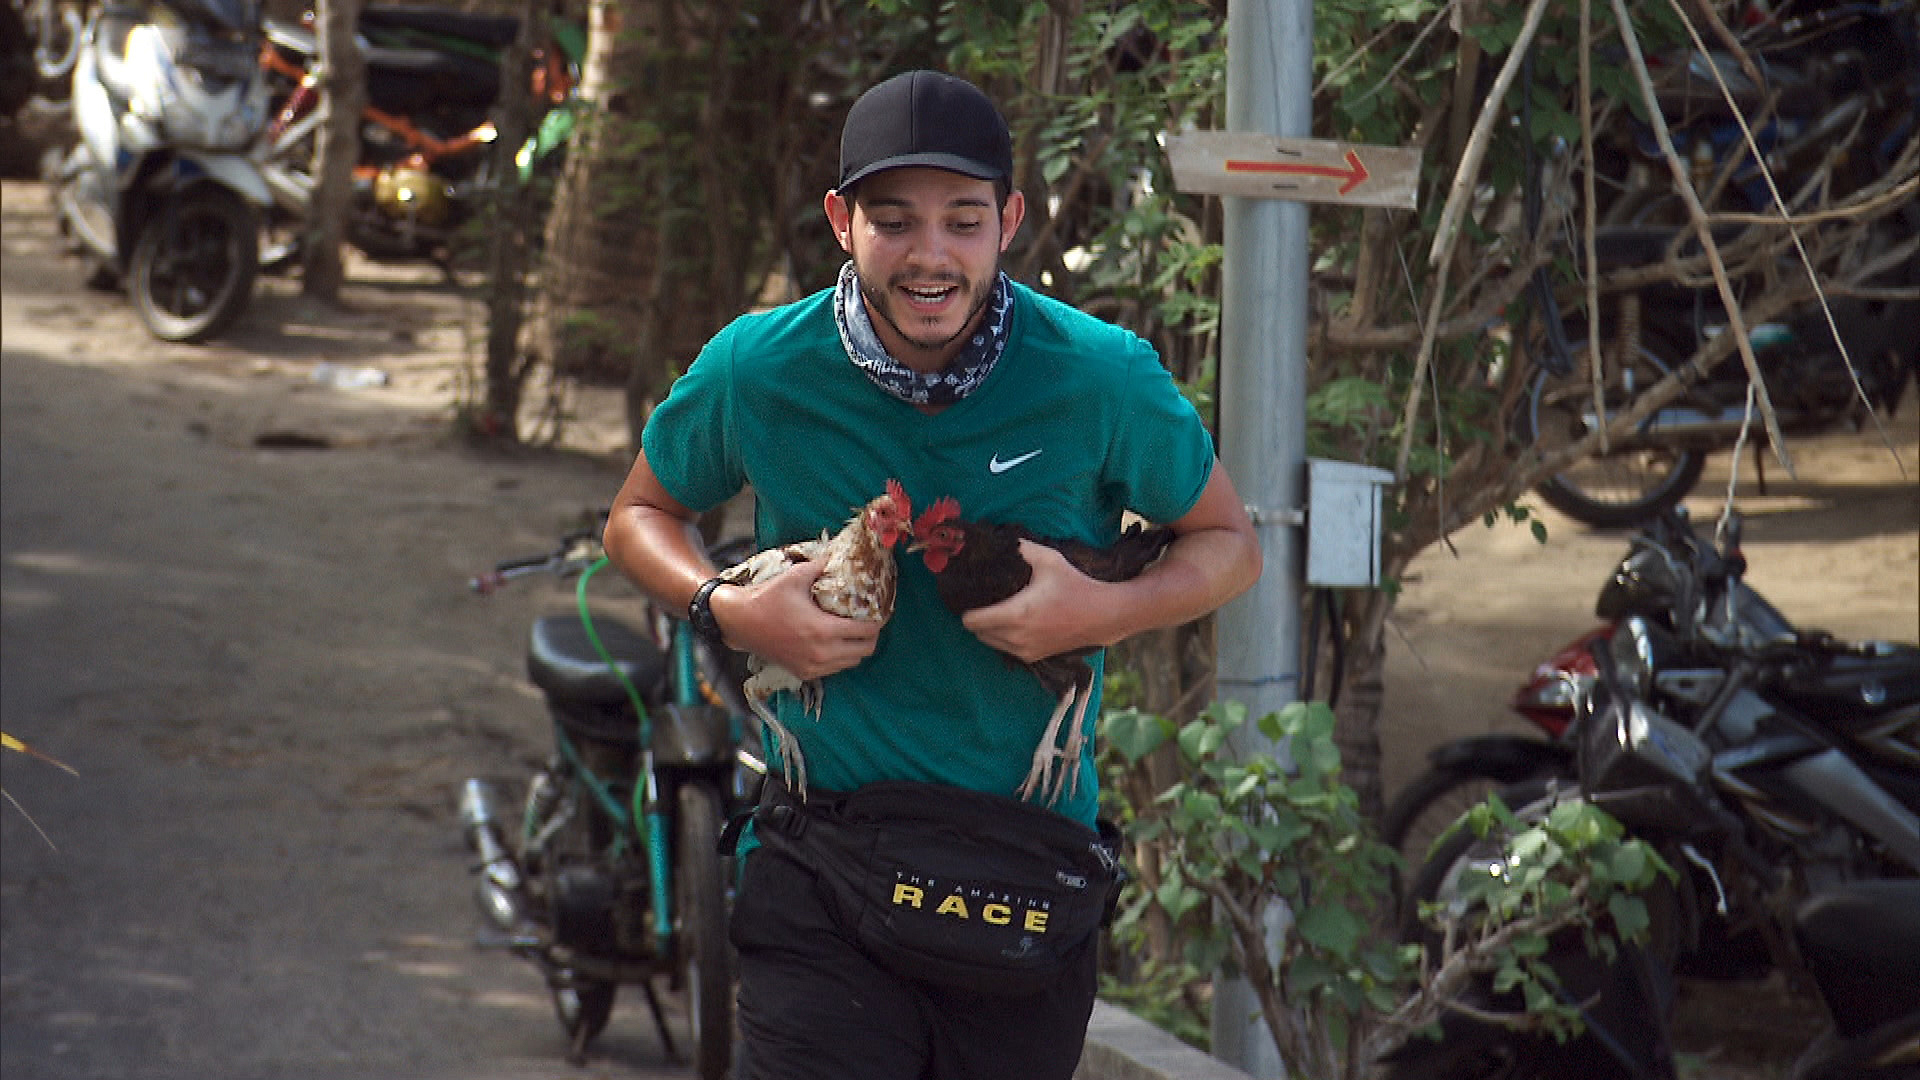 At Detour A, Korey delivers chickens to the Lembongan side of the bridge.